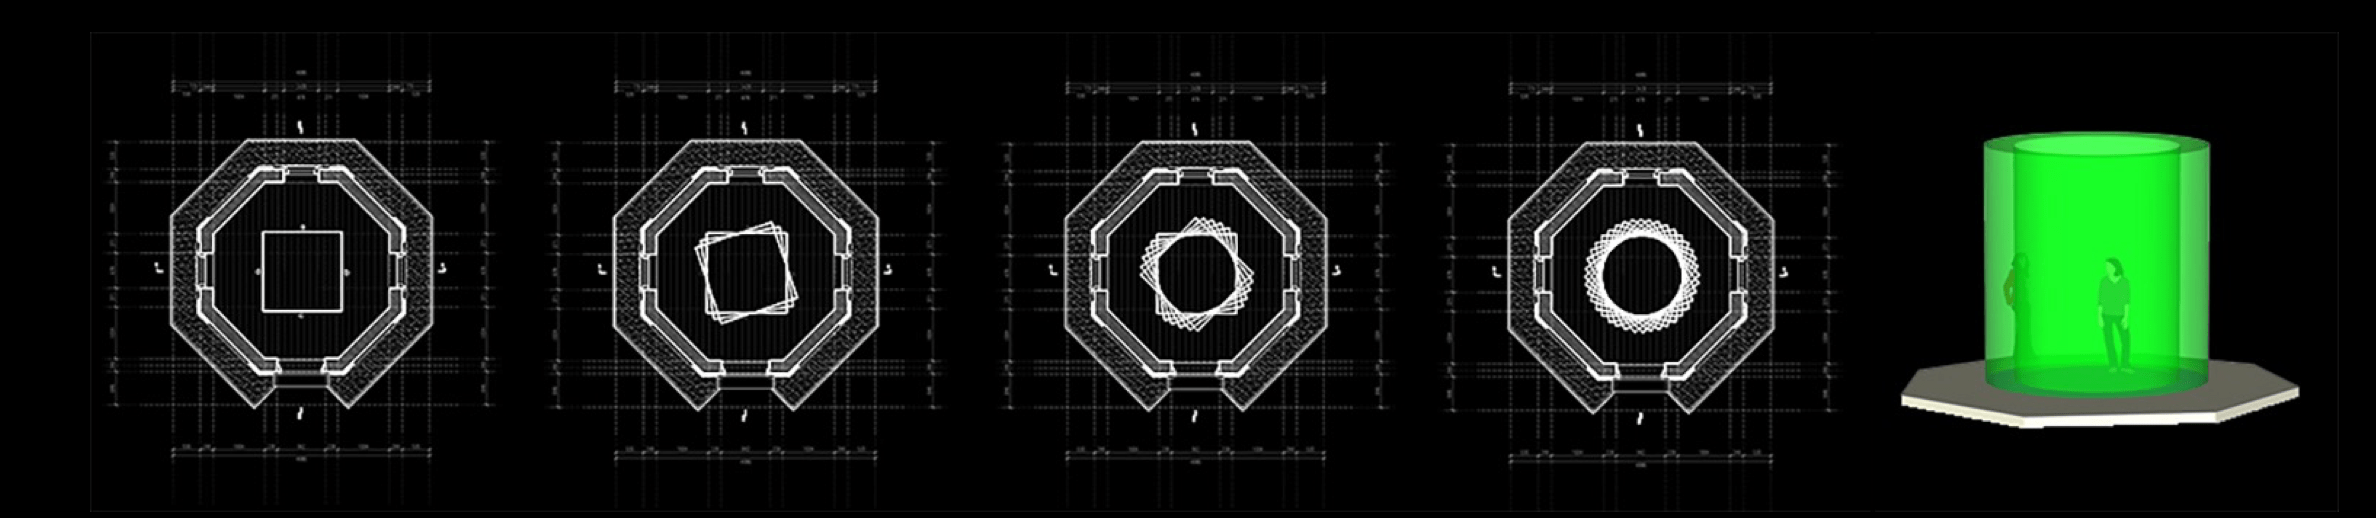 Orbital Thresholds | Interactive Architecture Lab